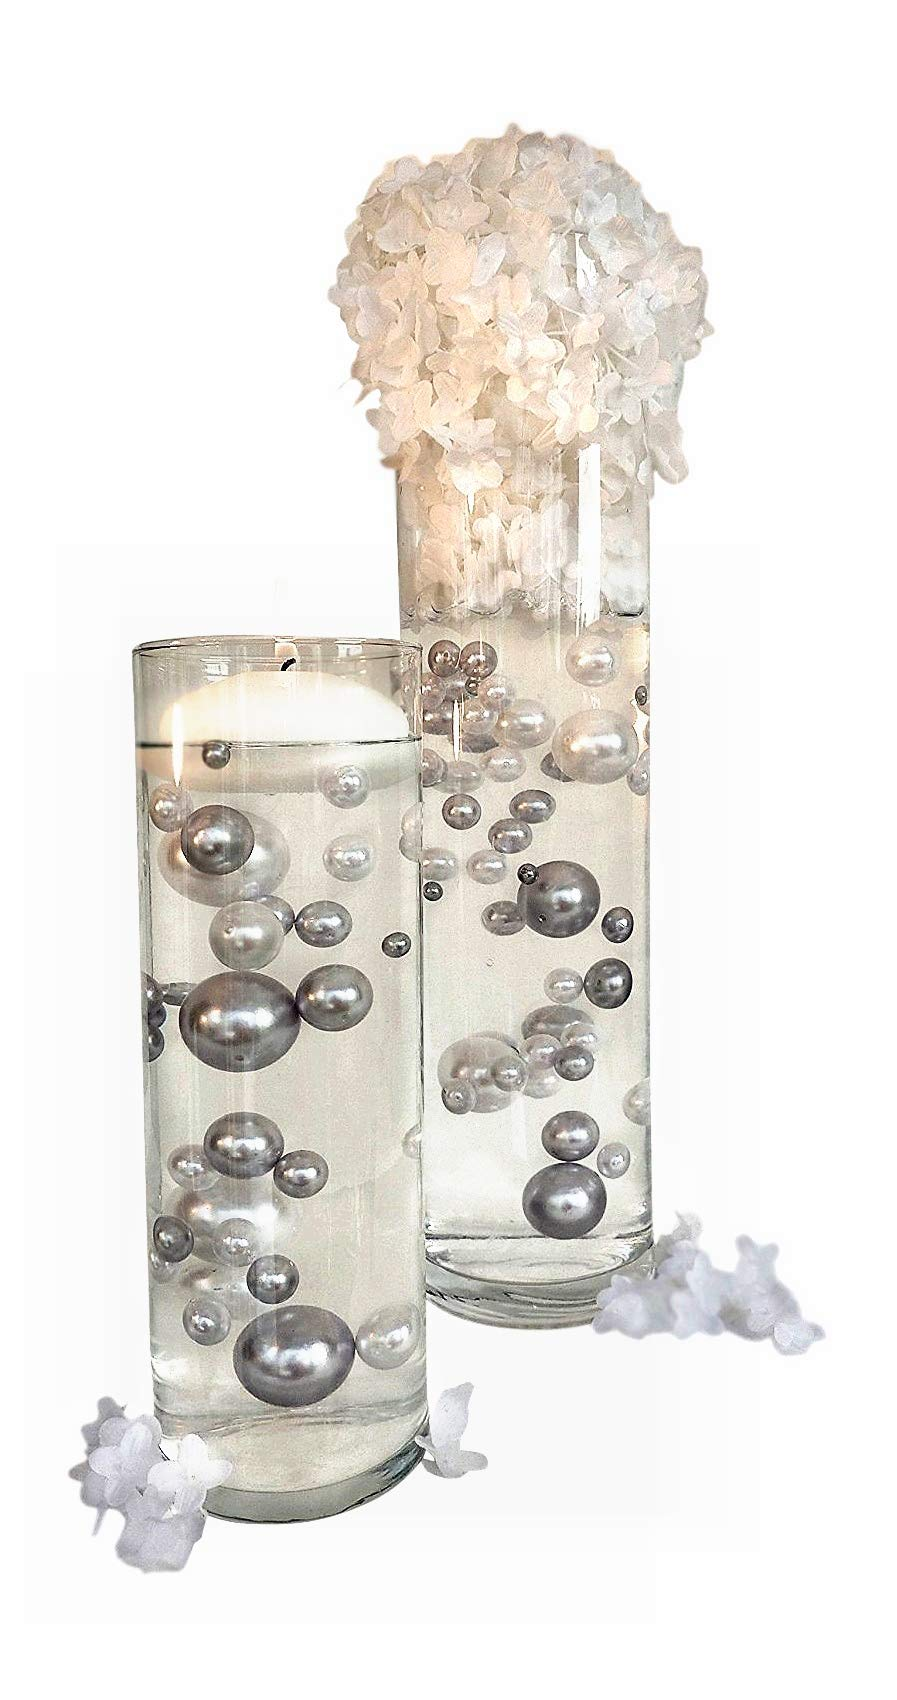 80 Silver and White Pearls Jumbo and Assorted Sizes - Vase Fillers for Decorating Centerpieces. NOT INCLUDING THE TRANSPARENT WATER GELS FOR FLOATING THE PEARLS (SOLD SEPARATELY).